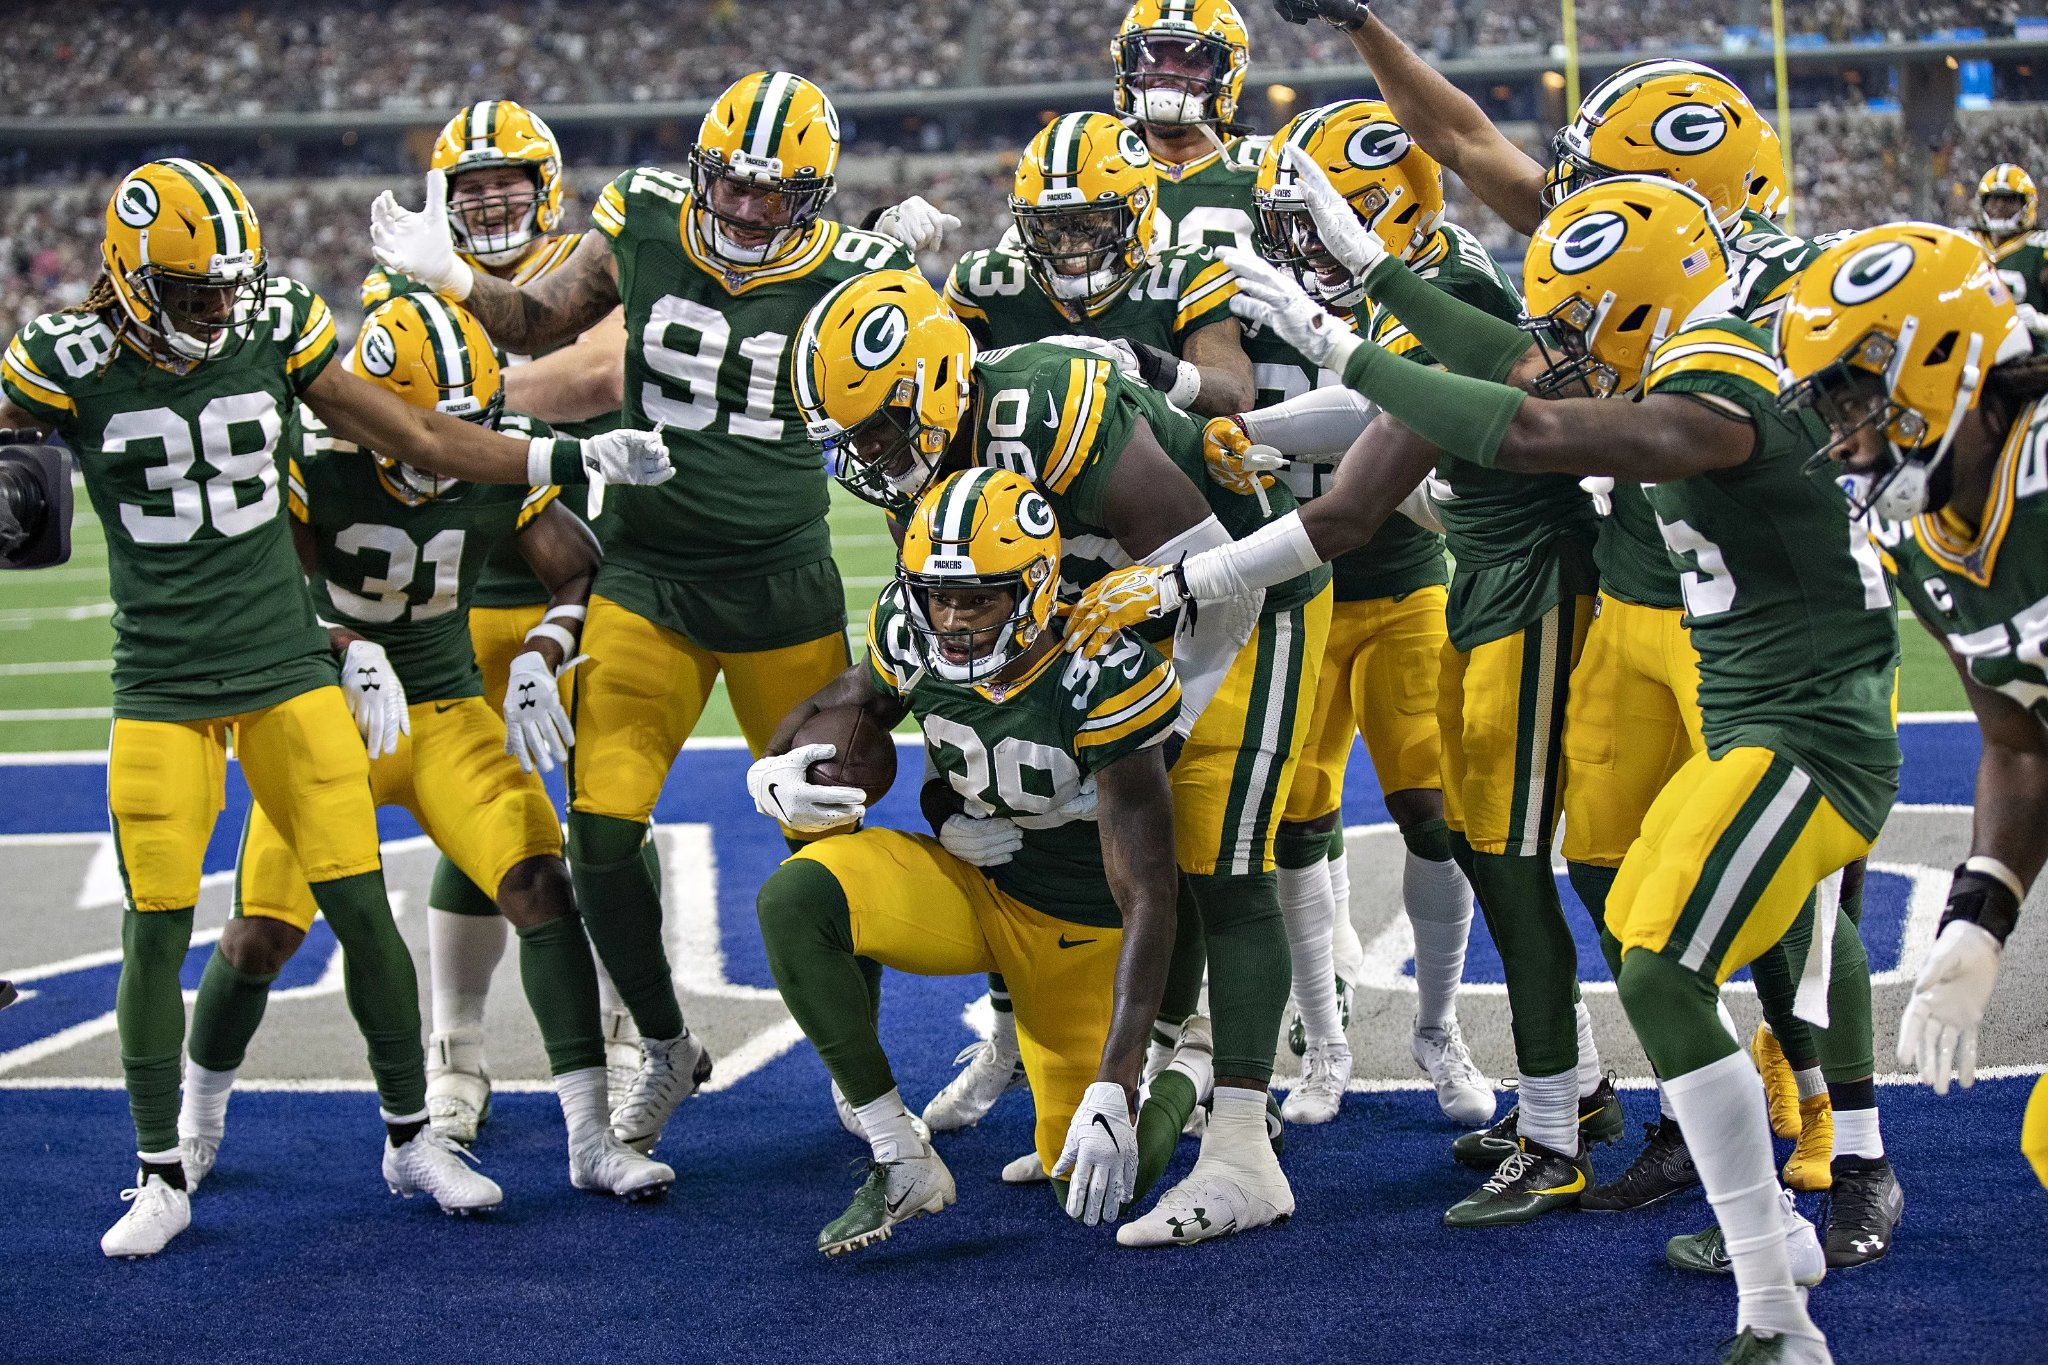 Mi Z ľ3פ ĉ 10 3 Agnfb 1 Nfcn On Weekend In Los Angeles Green Bay Packers Packers